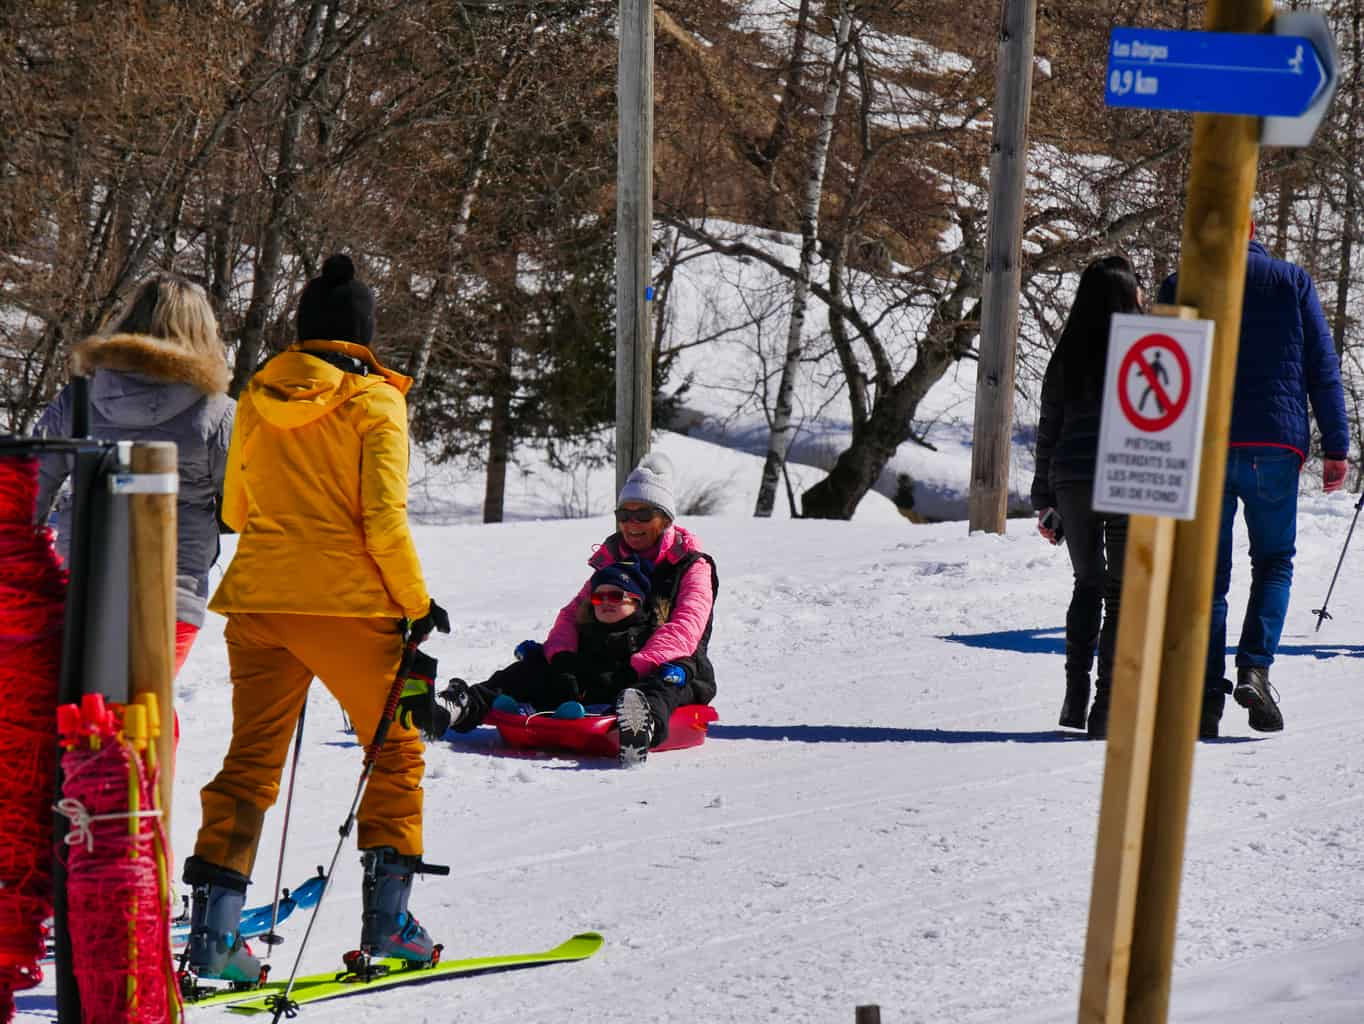 People sledging and skiing